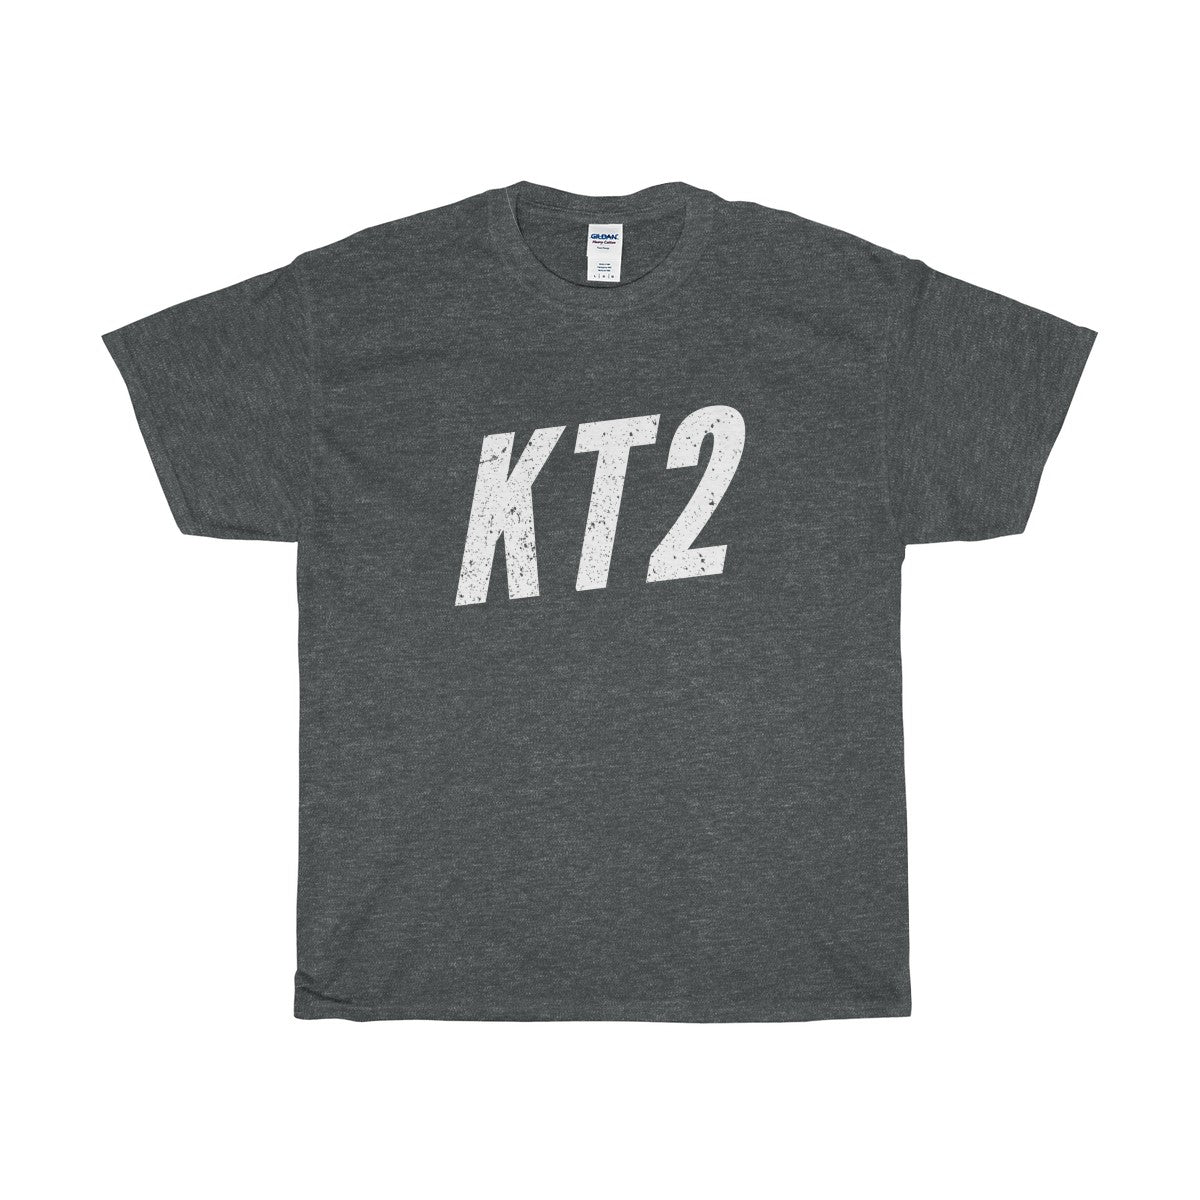 Kingston KT2 T-Shirt